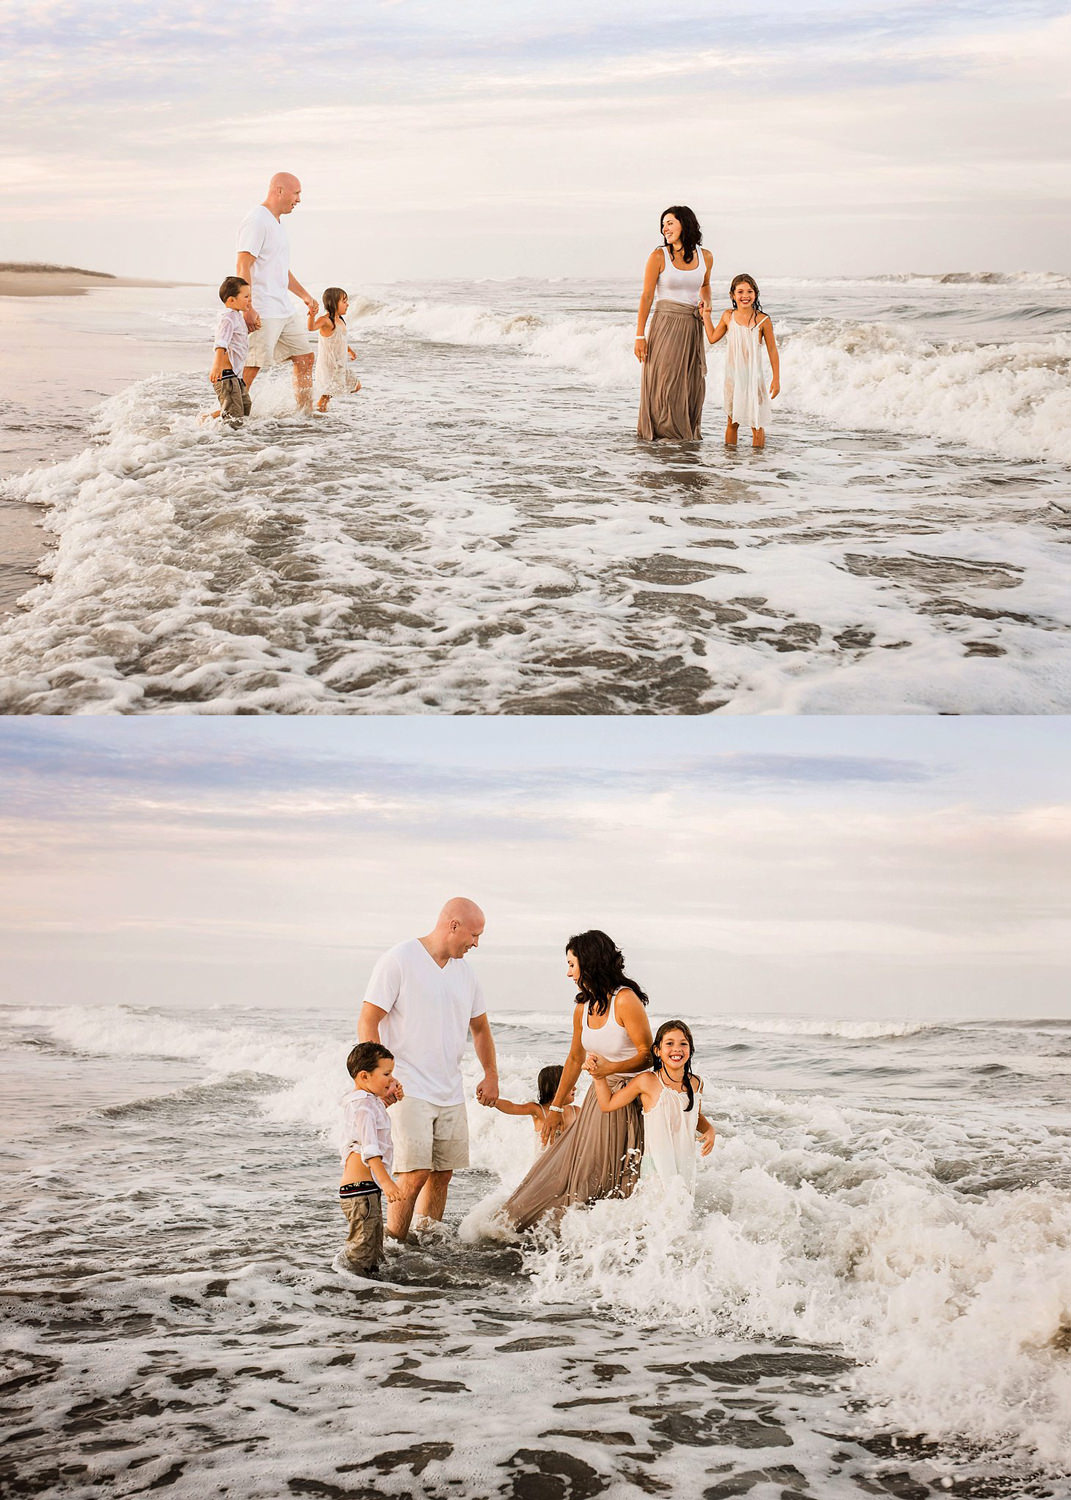 family-of-5-playing-on-the-beach-sandbridge-virginia-beach-sunset-pictures-melissa-bliss-photography.jpg